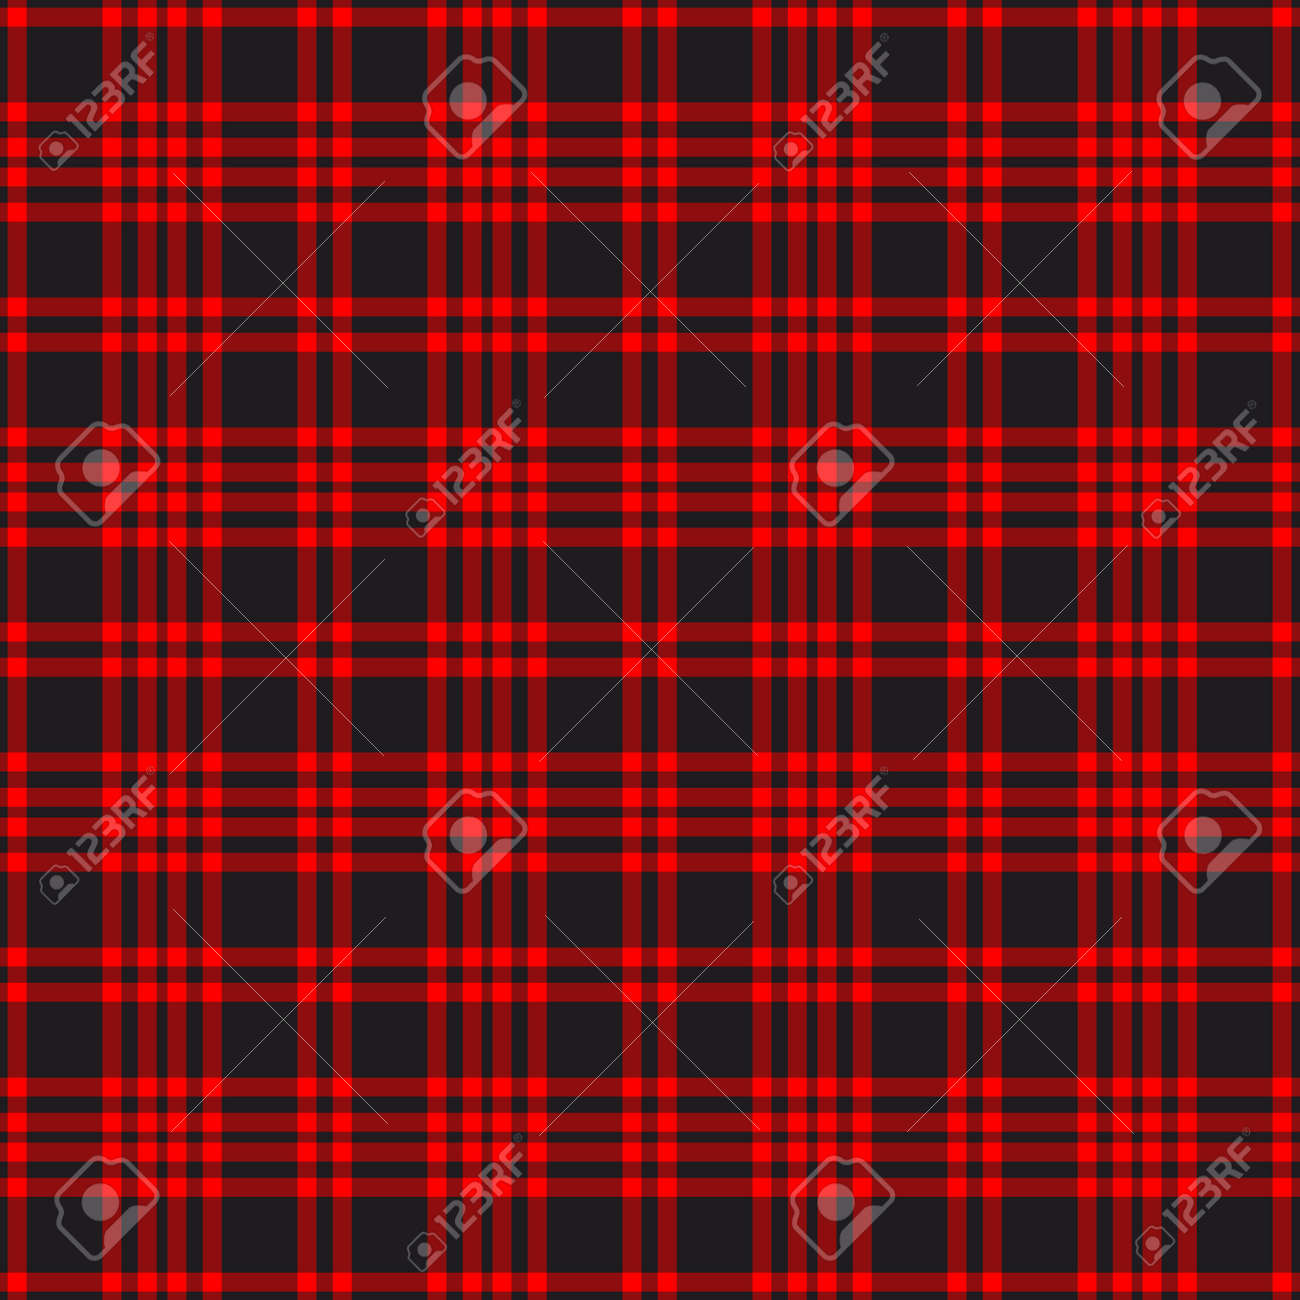 Tartan plaid pattern background. Texture for plaid, tablecloths, clothes, shirts, dresses, paper, bedding, blankets, quilts and other textile products. Vector illustration EPS 10 - 158348444